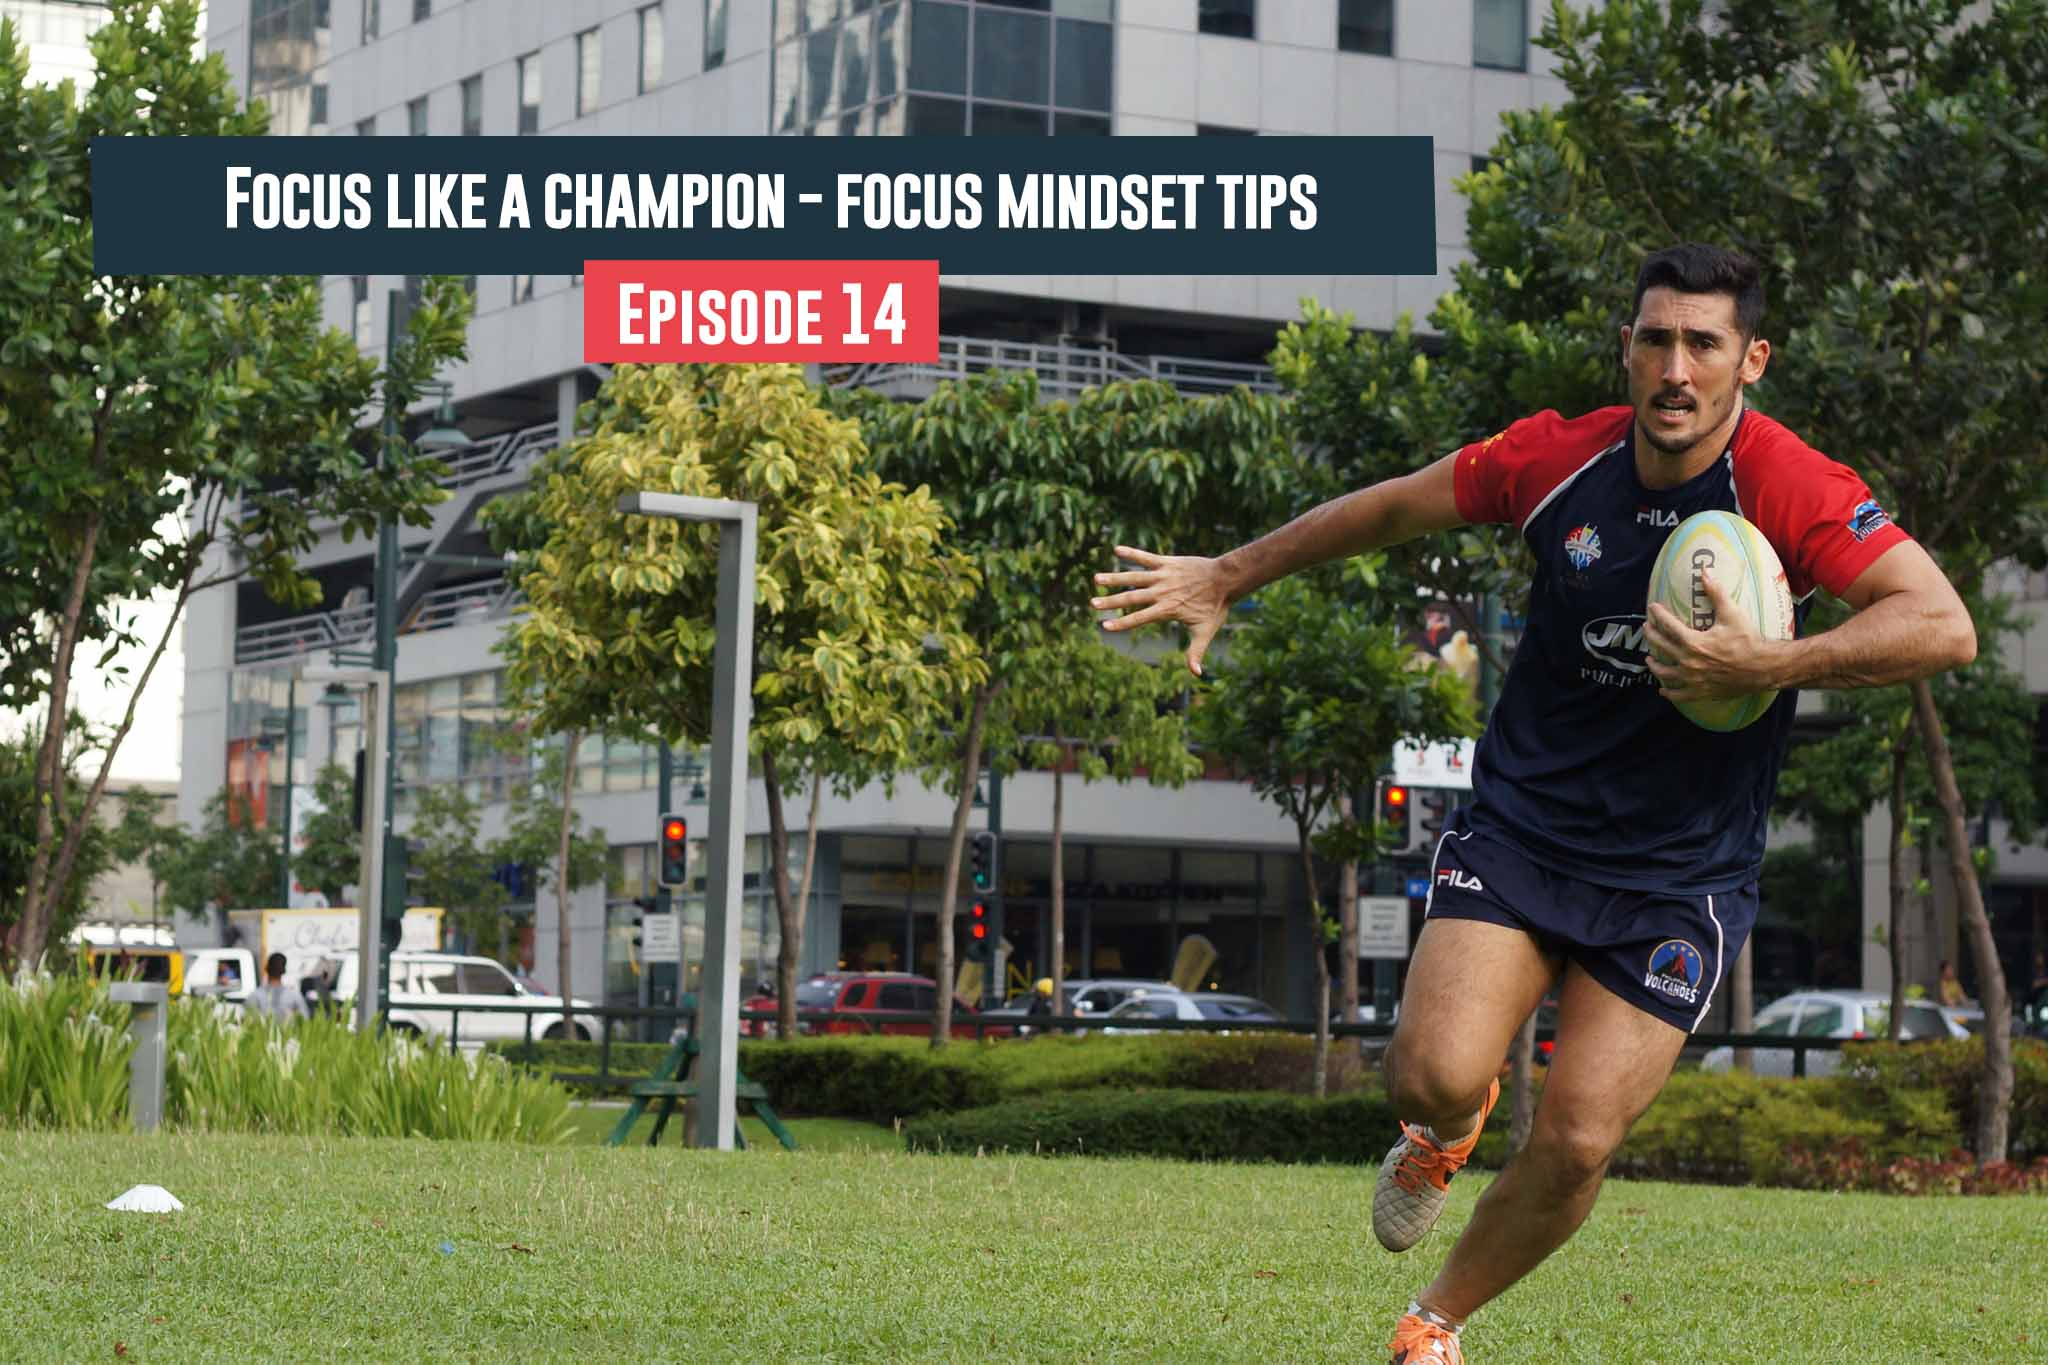 Episode 14 - Focus Like A Champion - Focus Mindset Tips